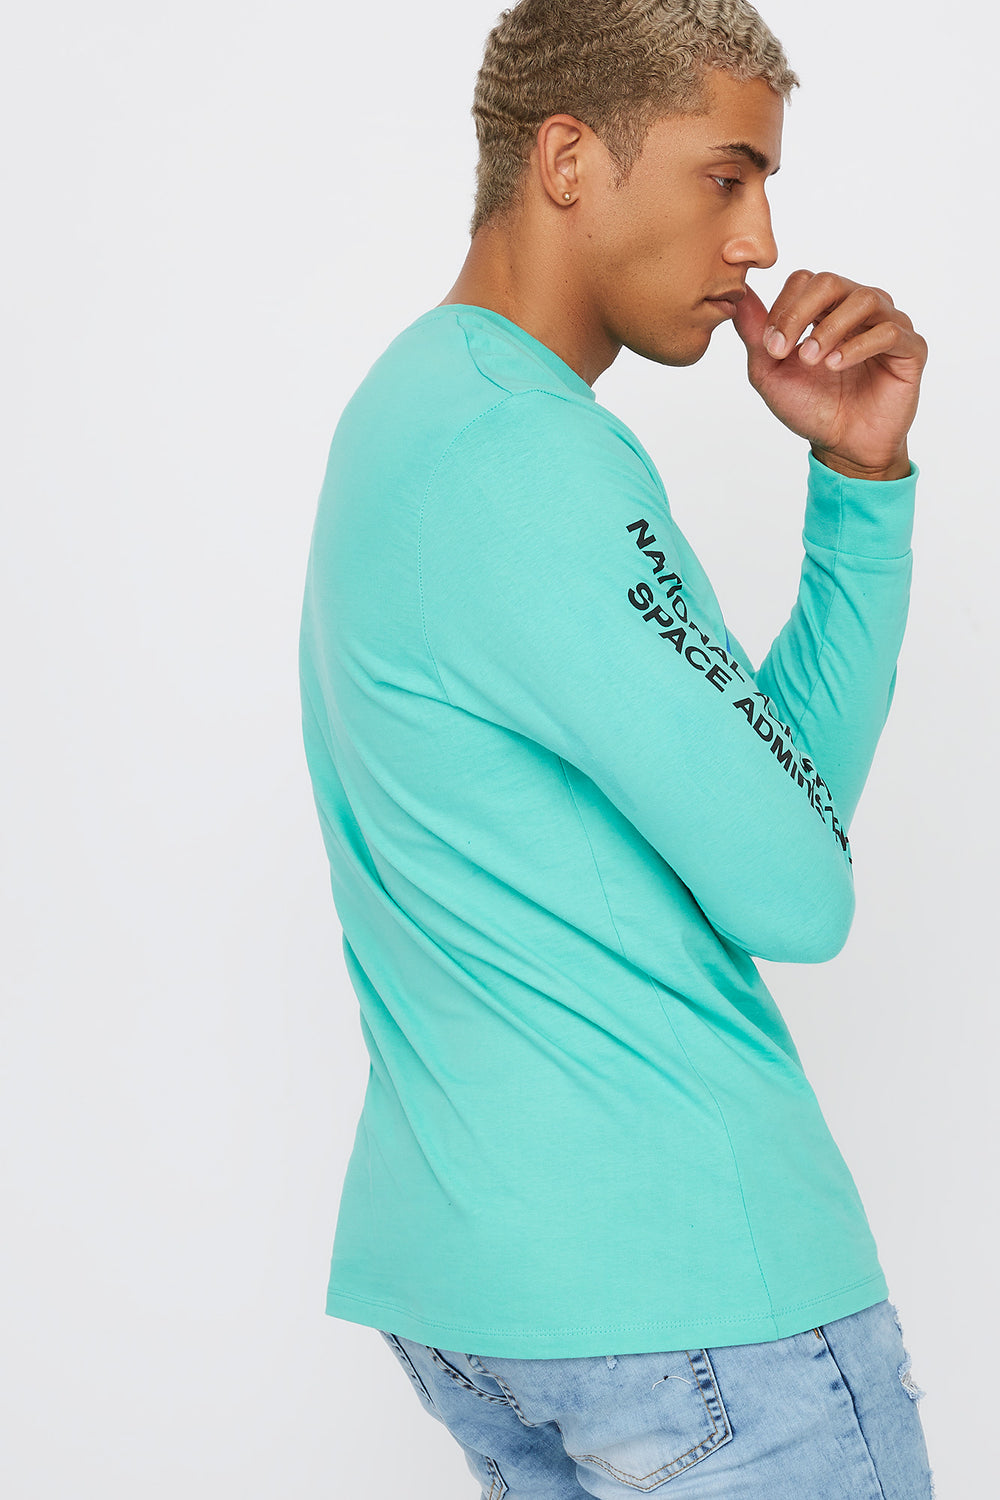 NASA Logo Graphic Crew Neck Long Sleeve Turquoise